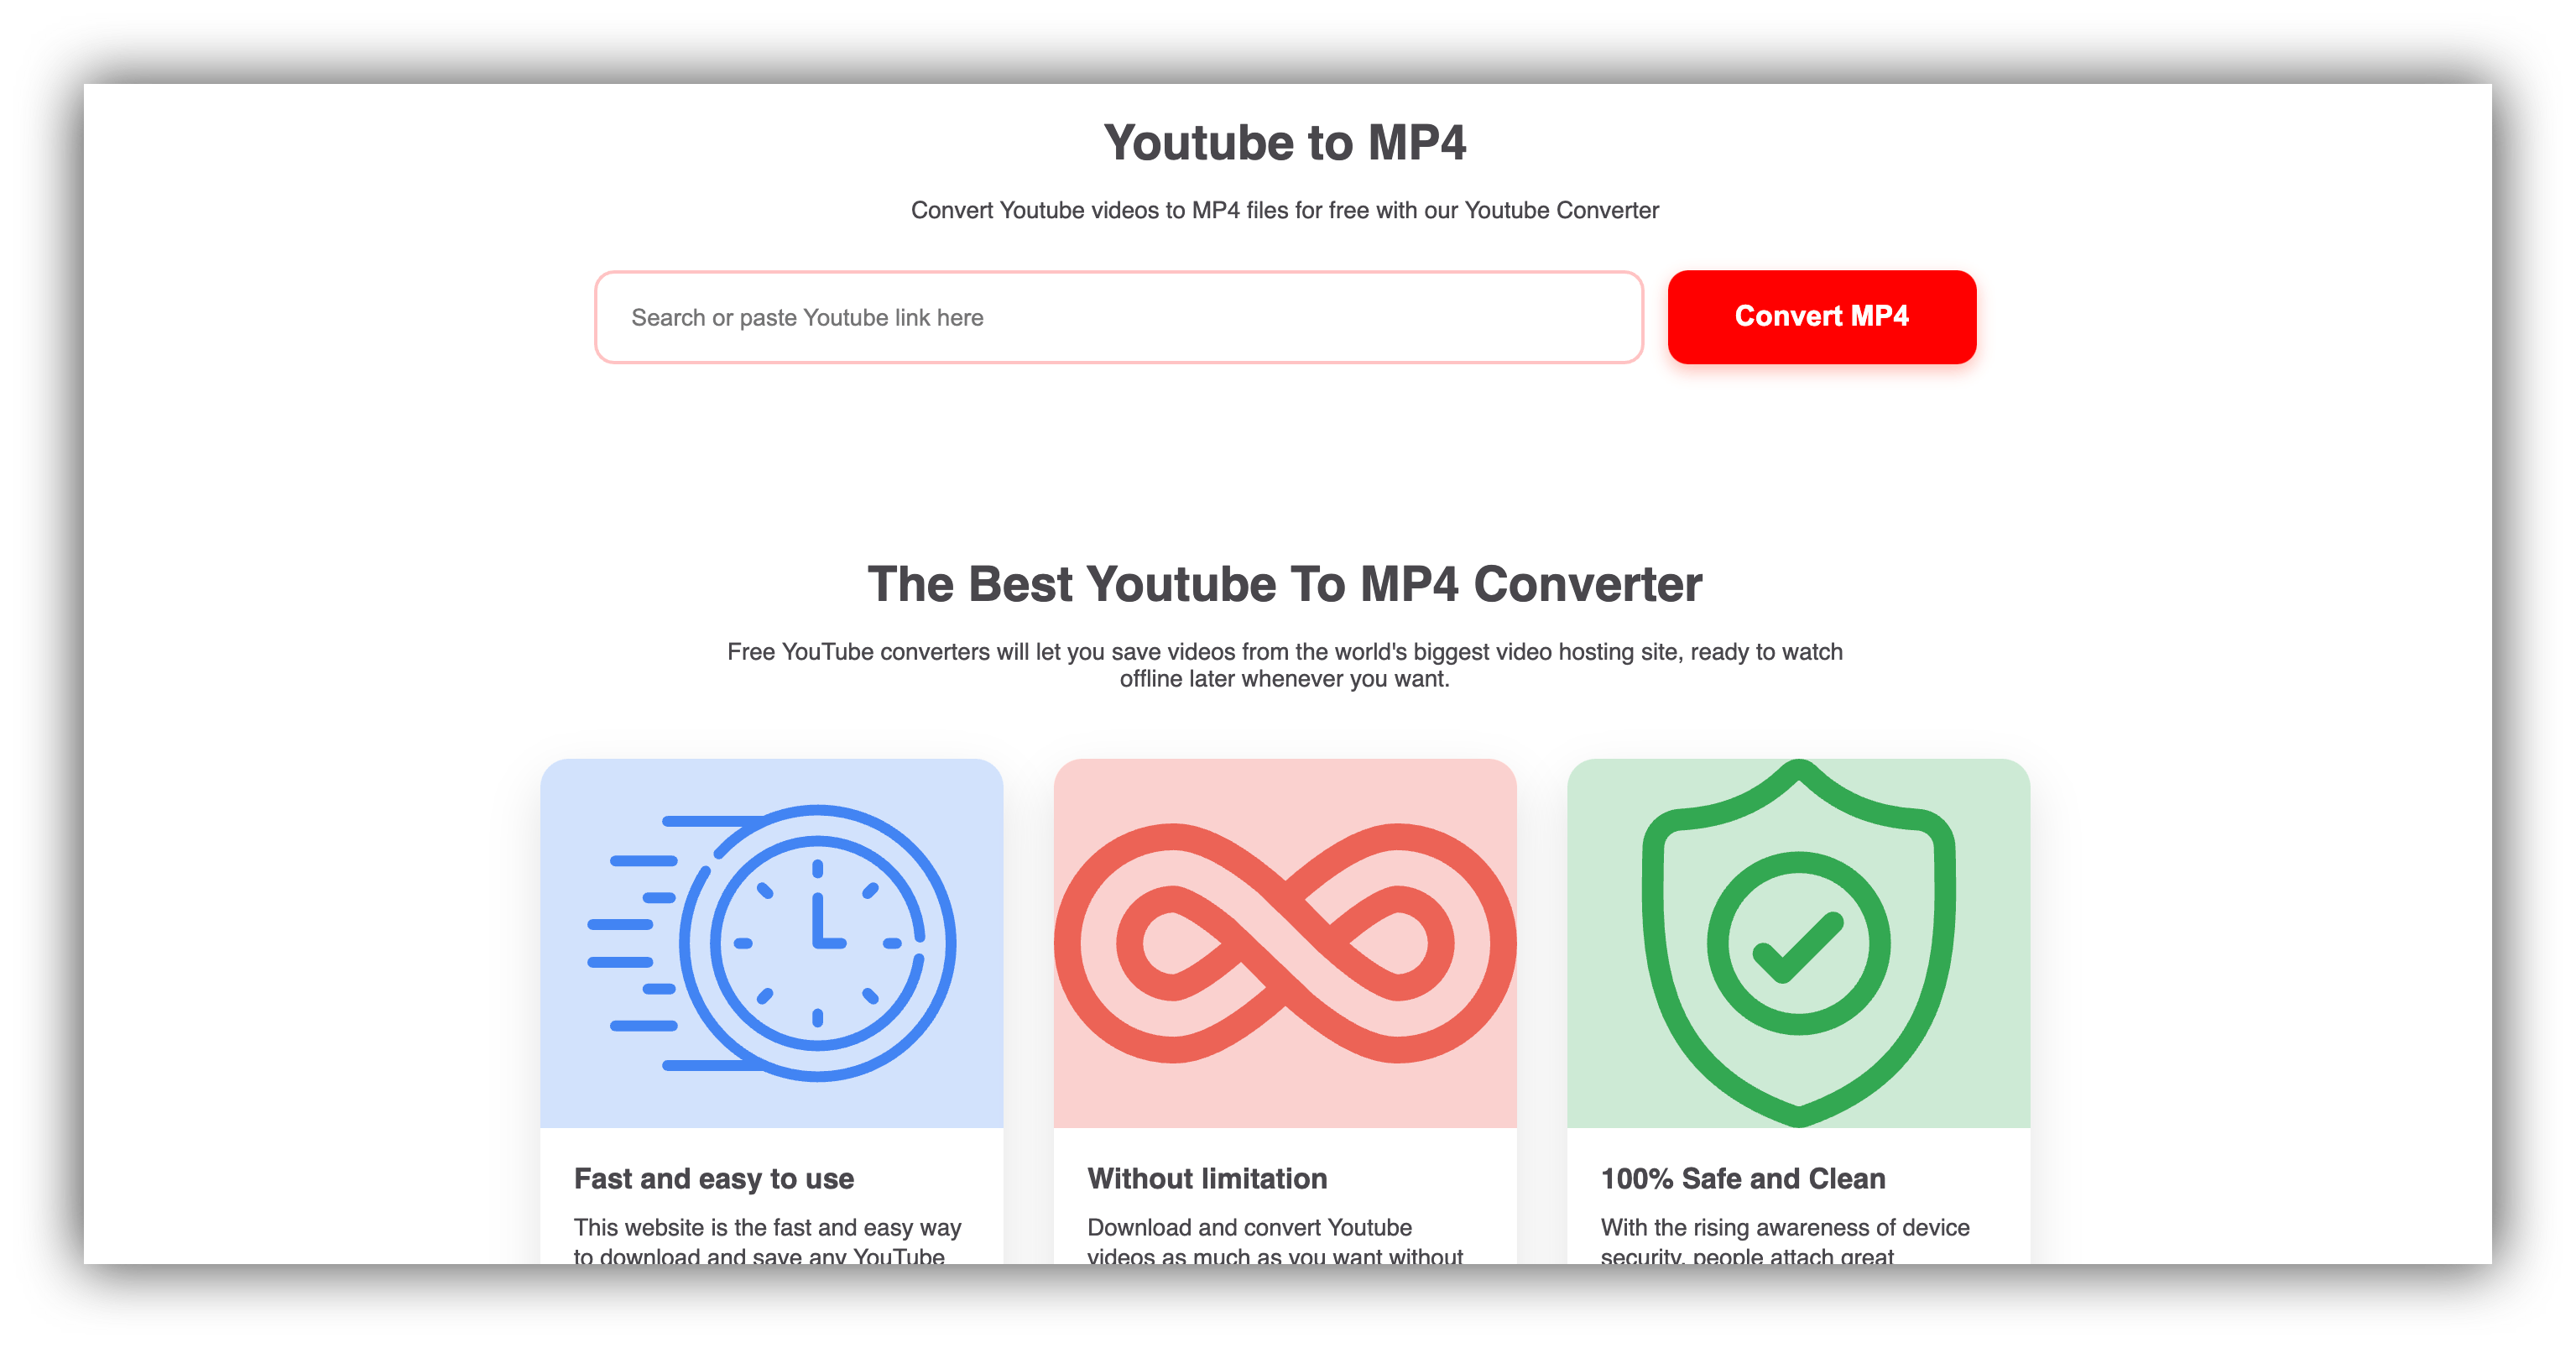 yt1s homepage